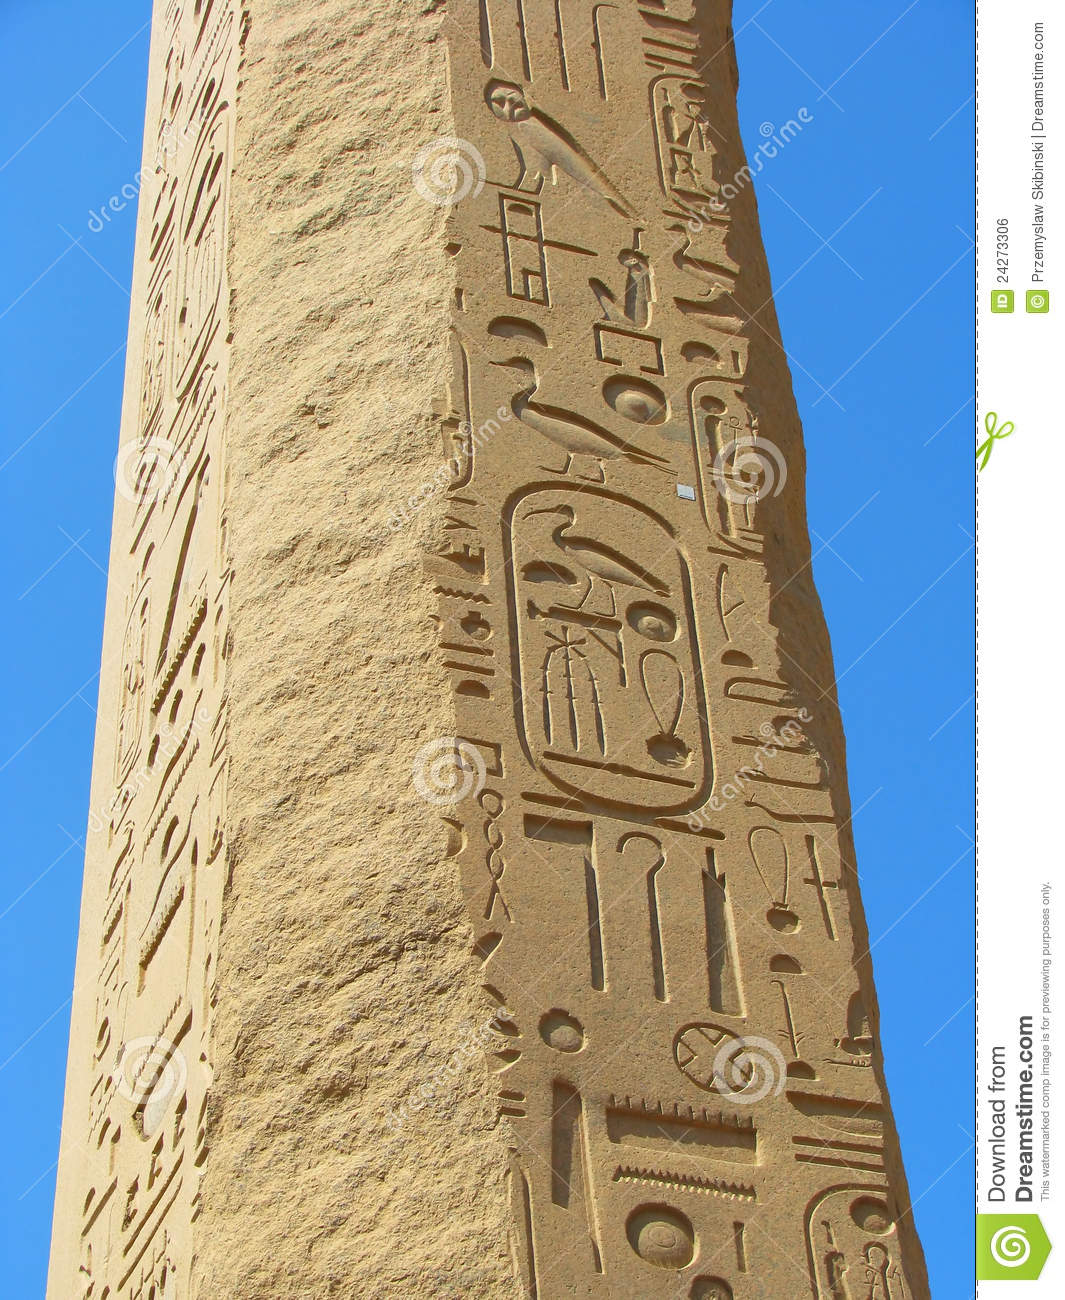 Obelisk with ancient egyptian hieroglyphics royalty free